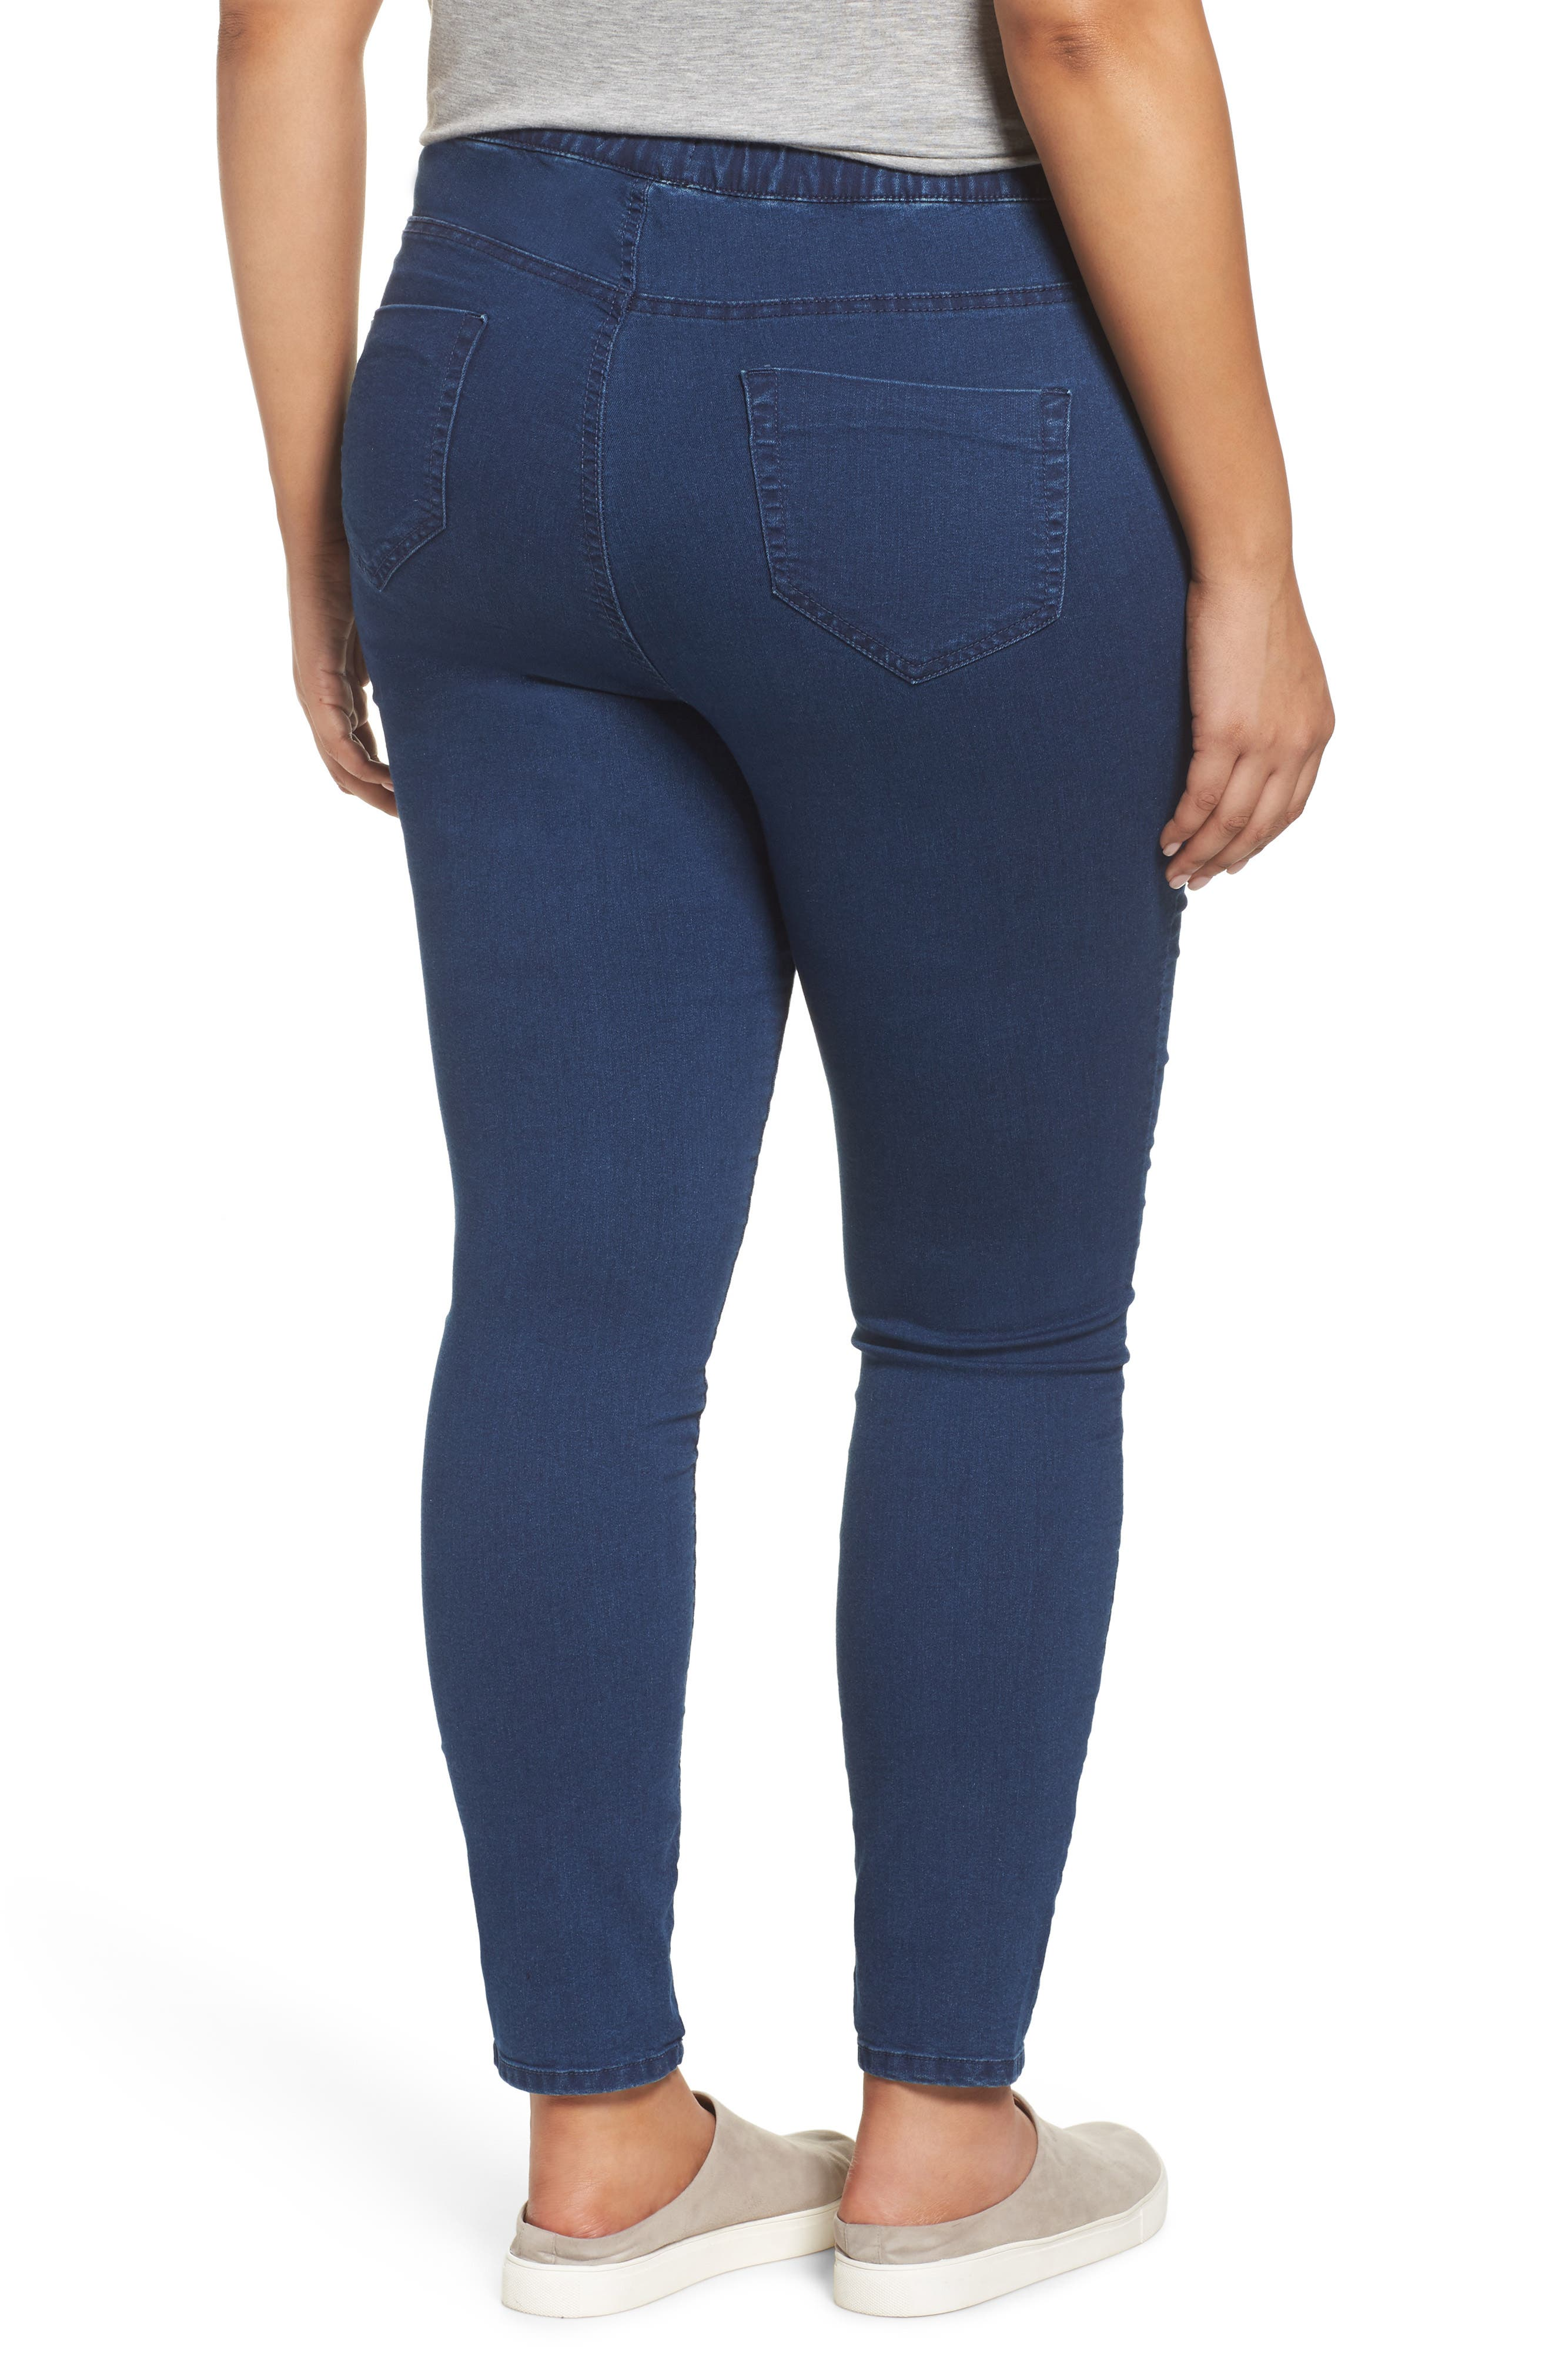 Denim Leggings,                             Alternate thumbnail 2, color,